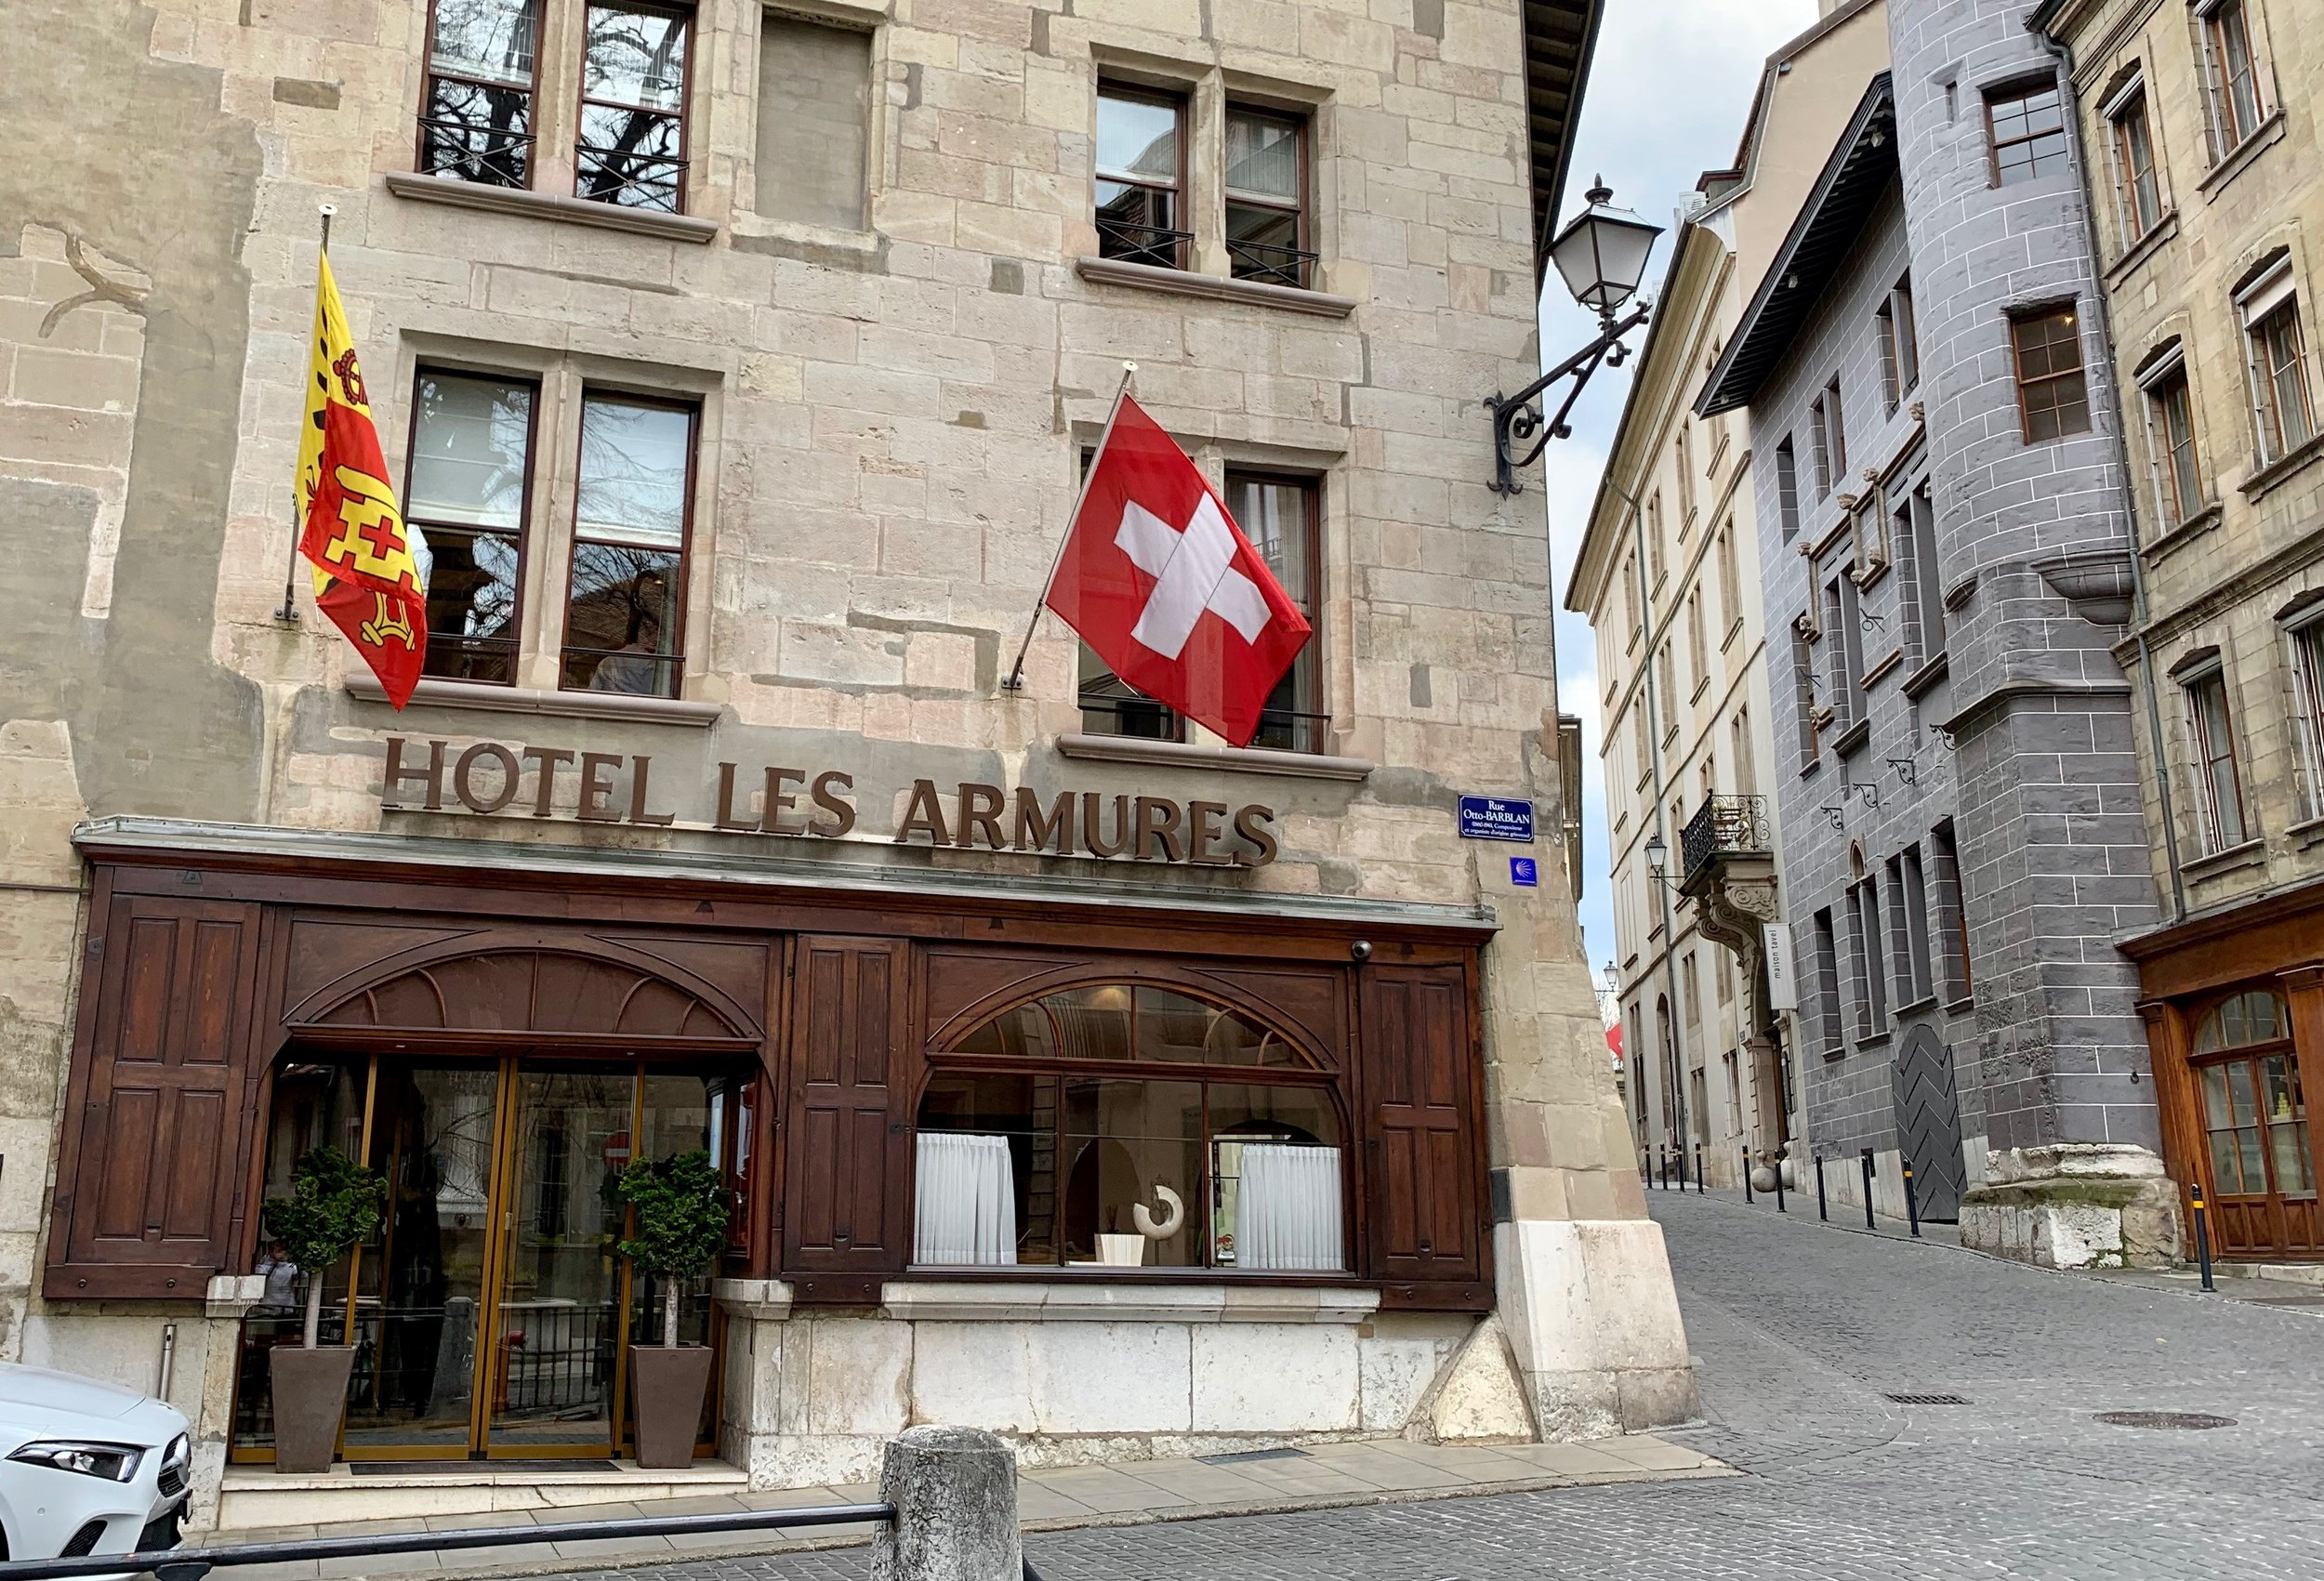 The Hotel les Armures. Geneva Old Town, March 2019.